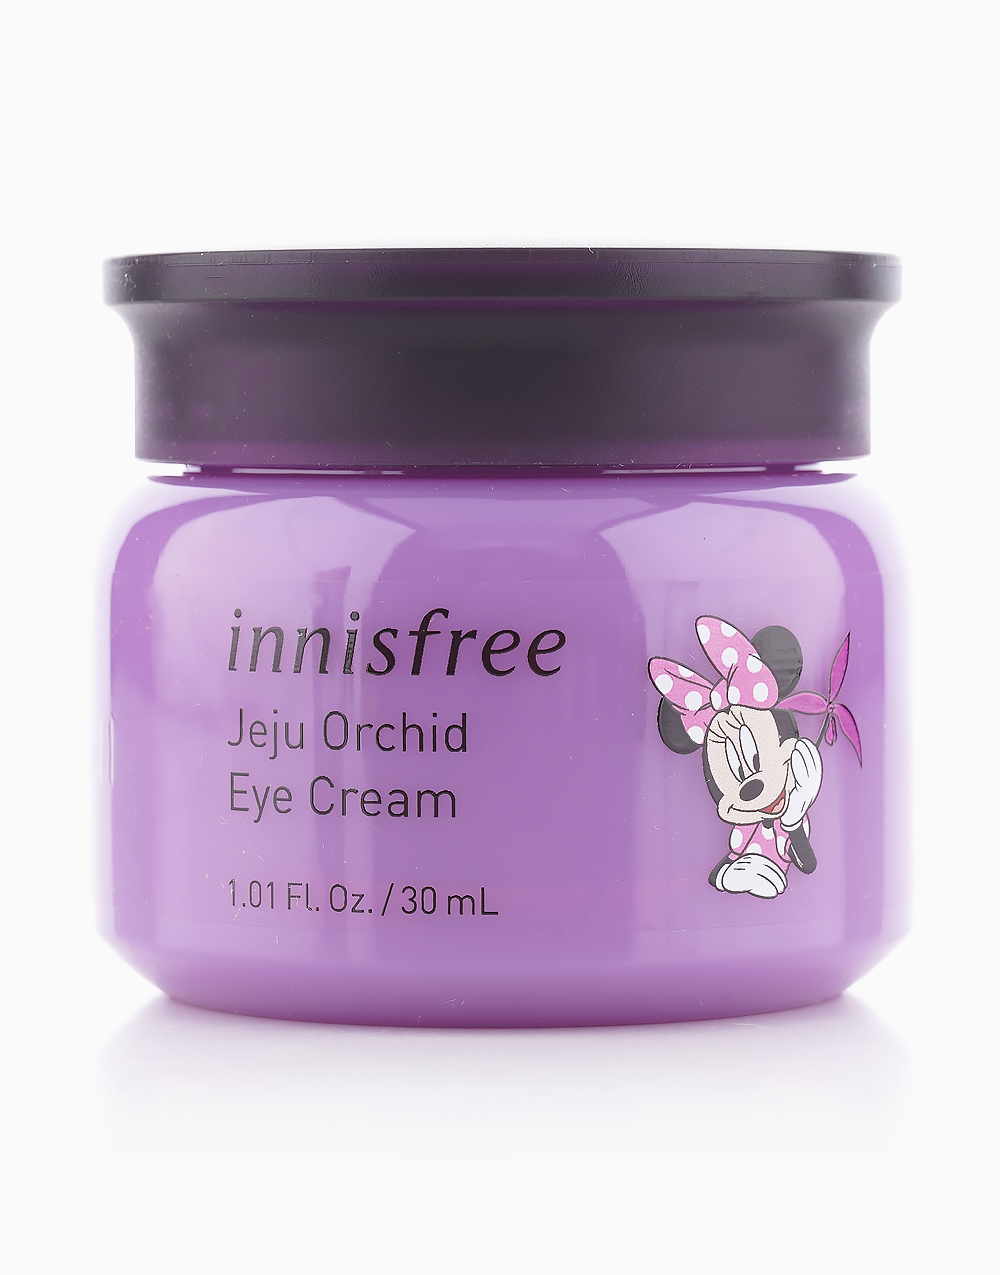 Jeju Orchid Lucky Box by Innisfree